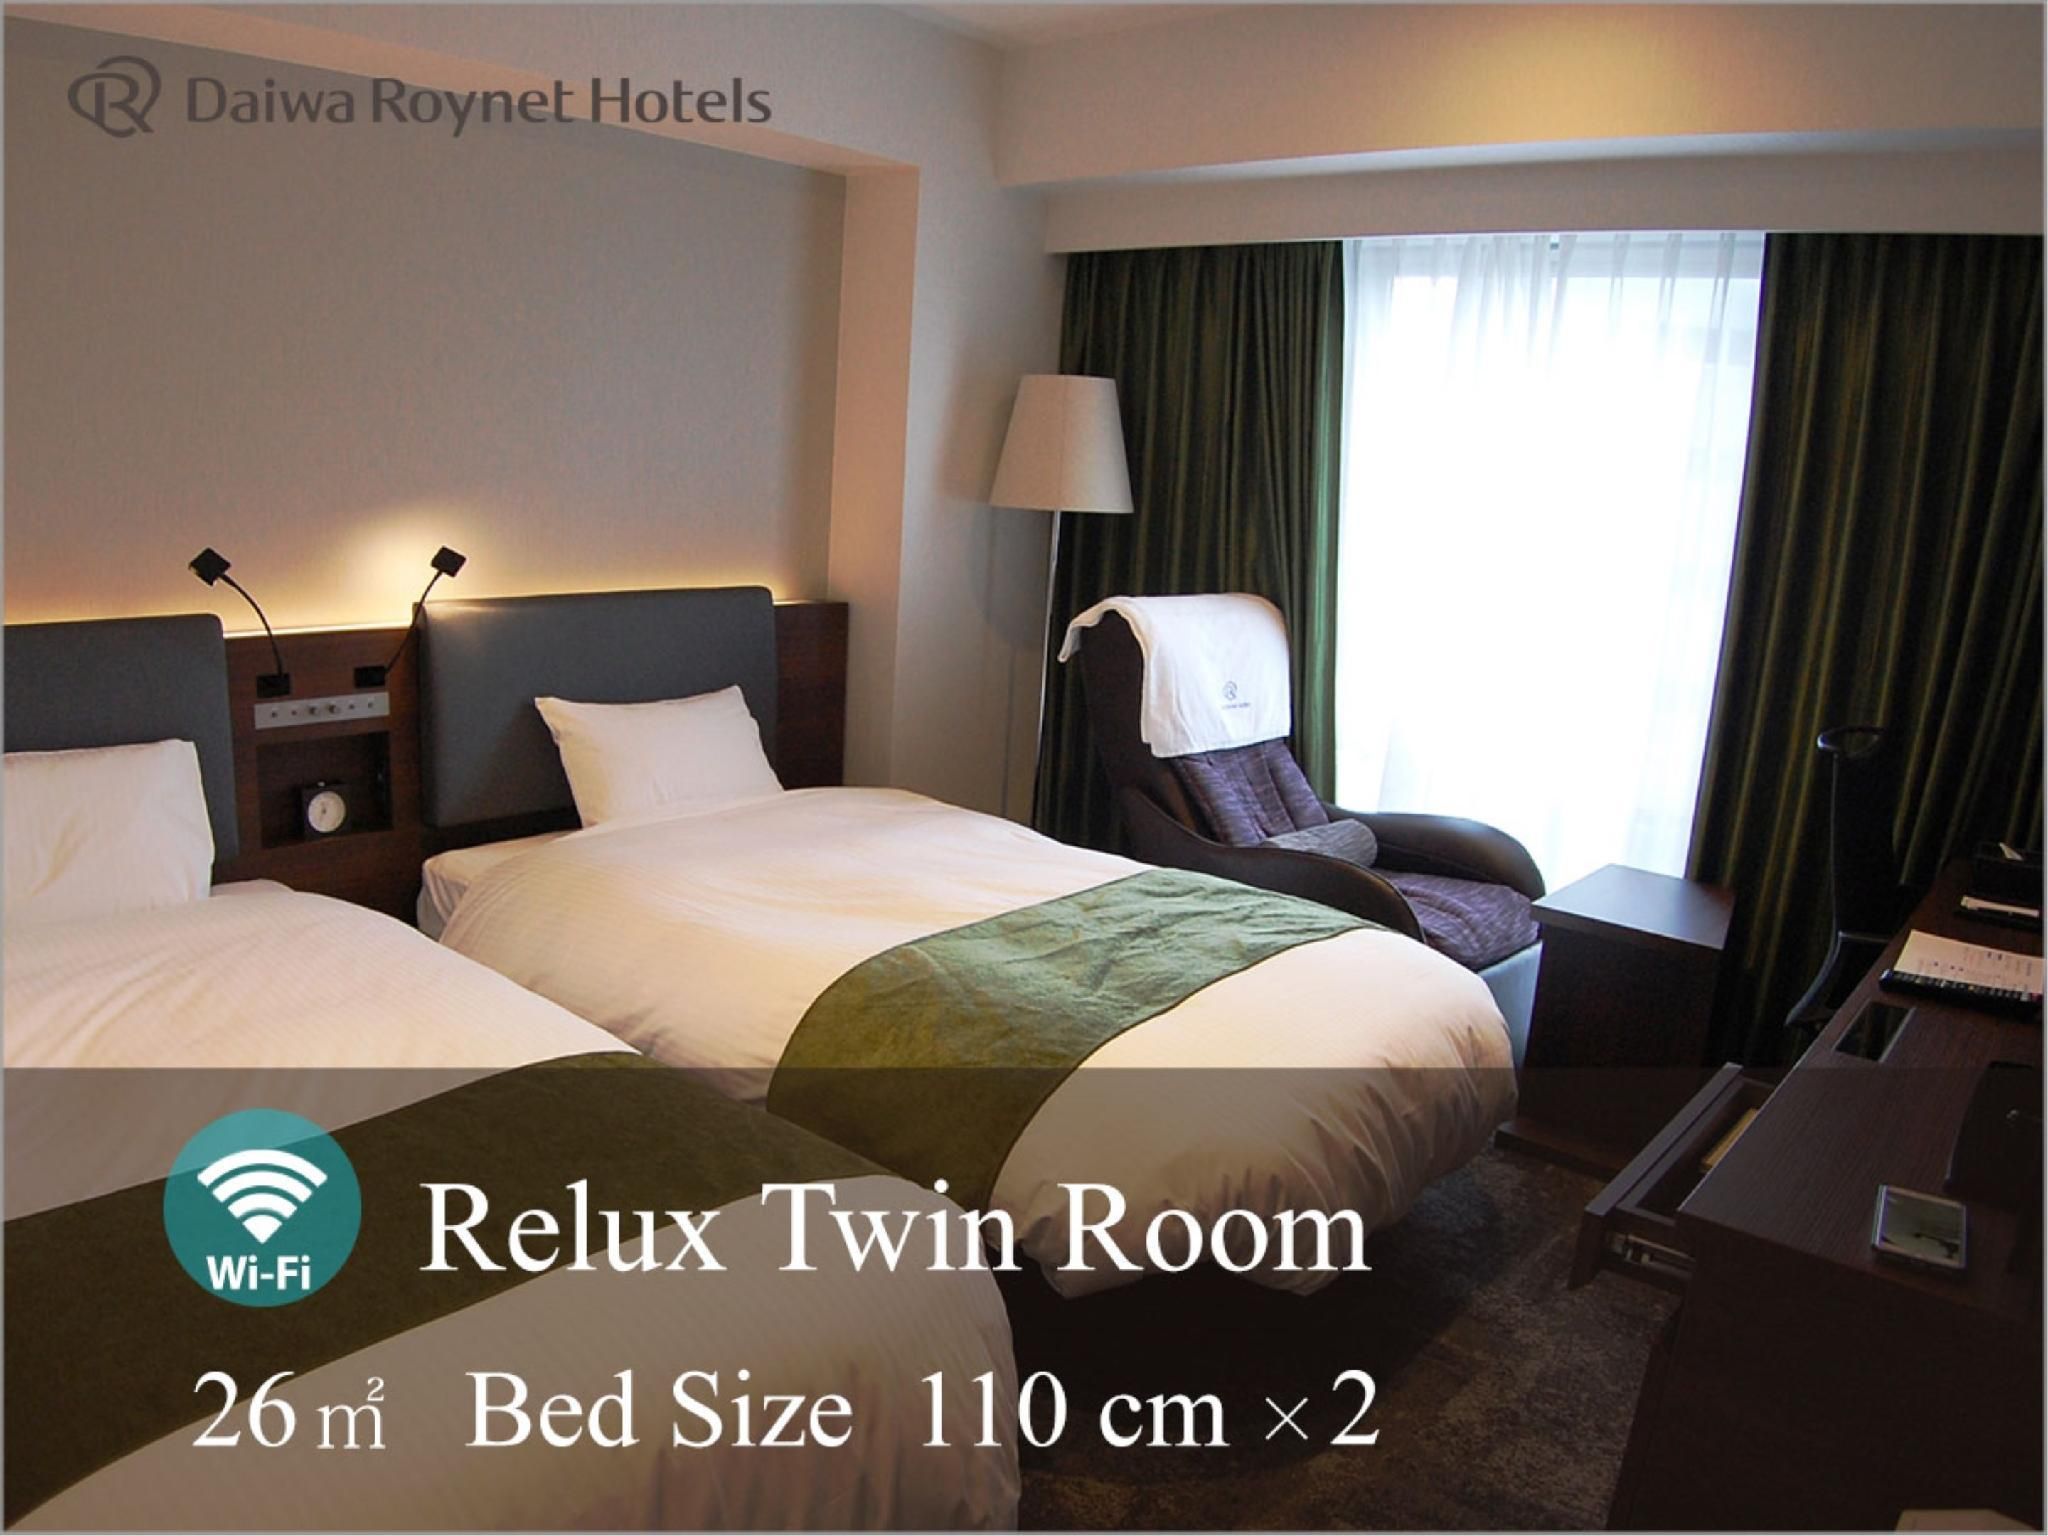 Relax Twin Room